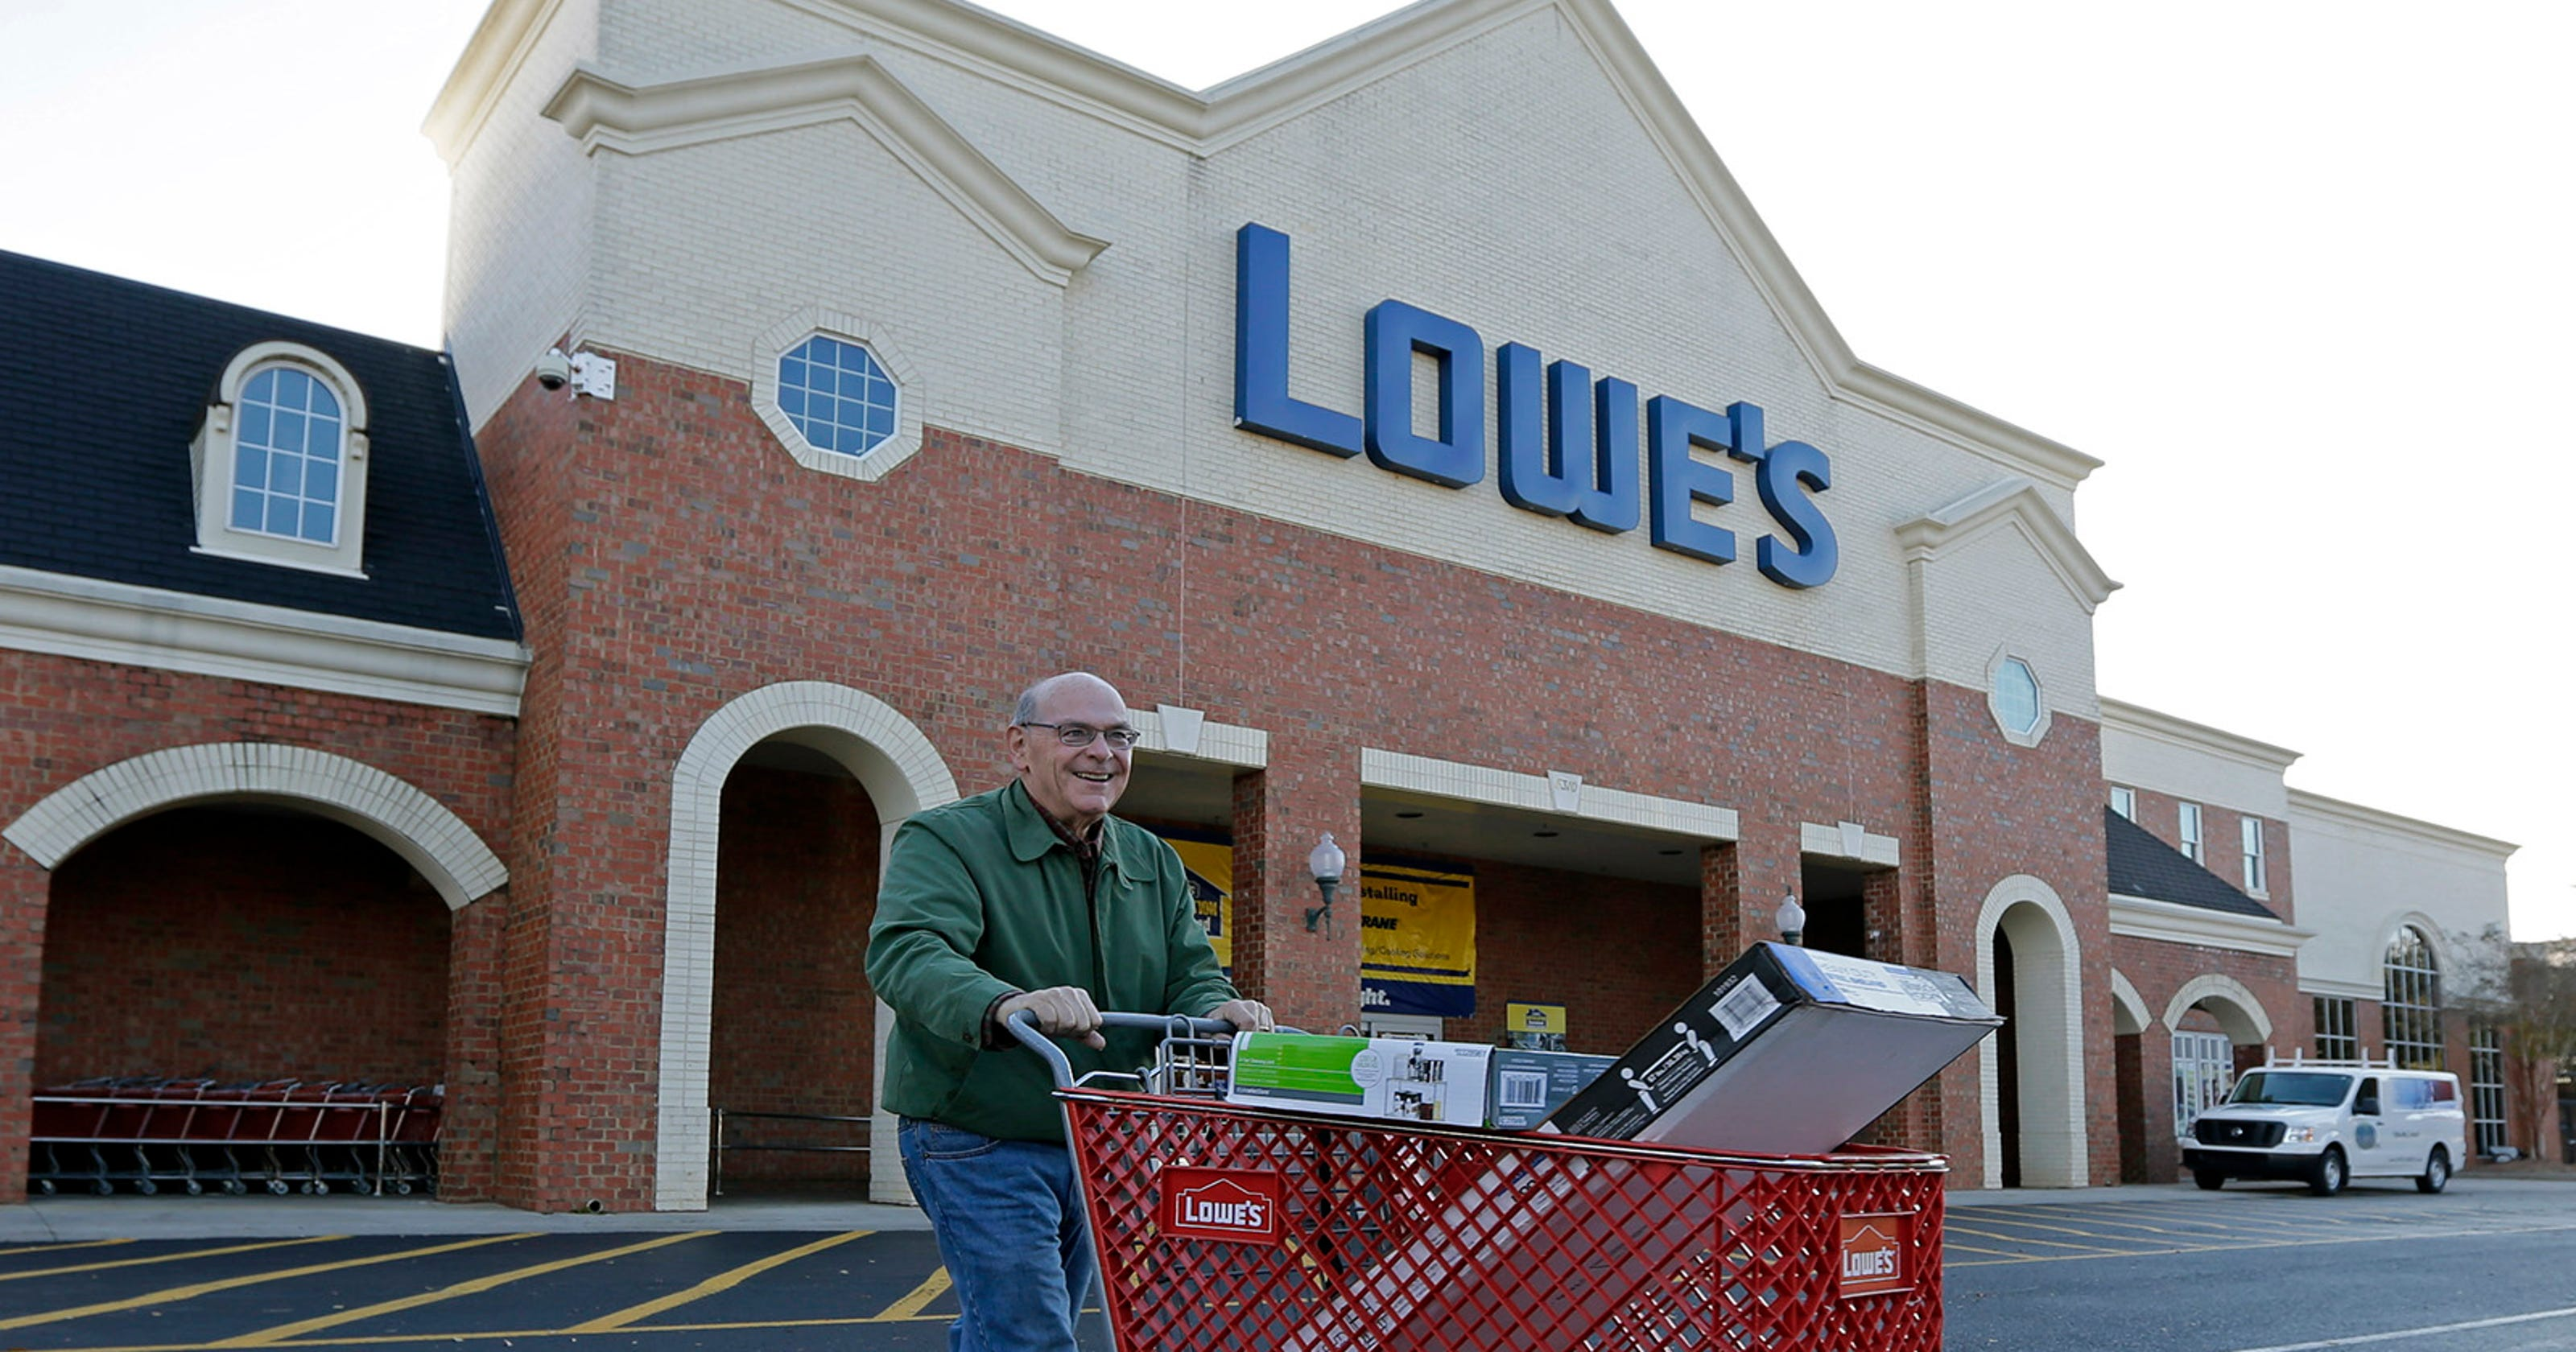 Gay ex-Lowe's employee alleges discrimination